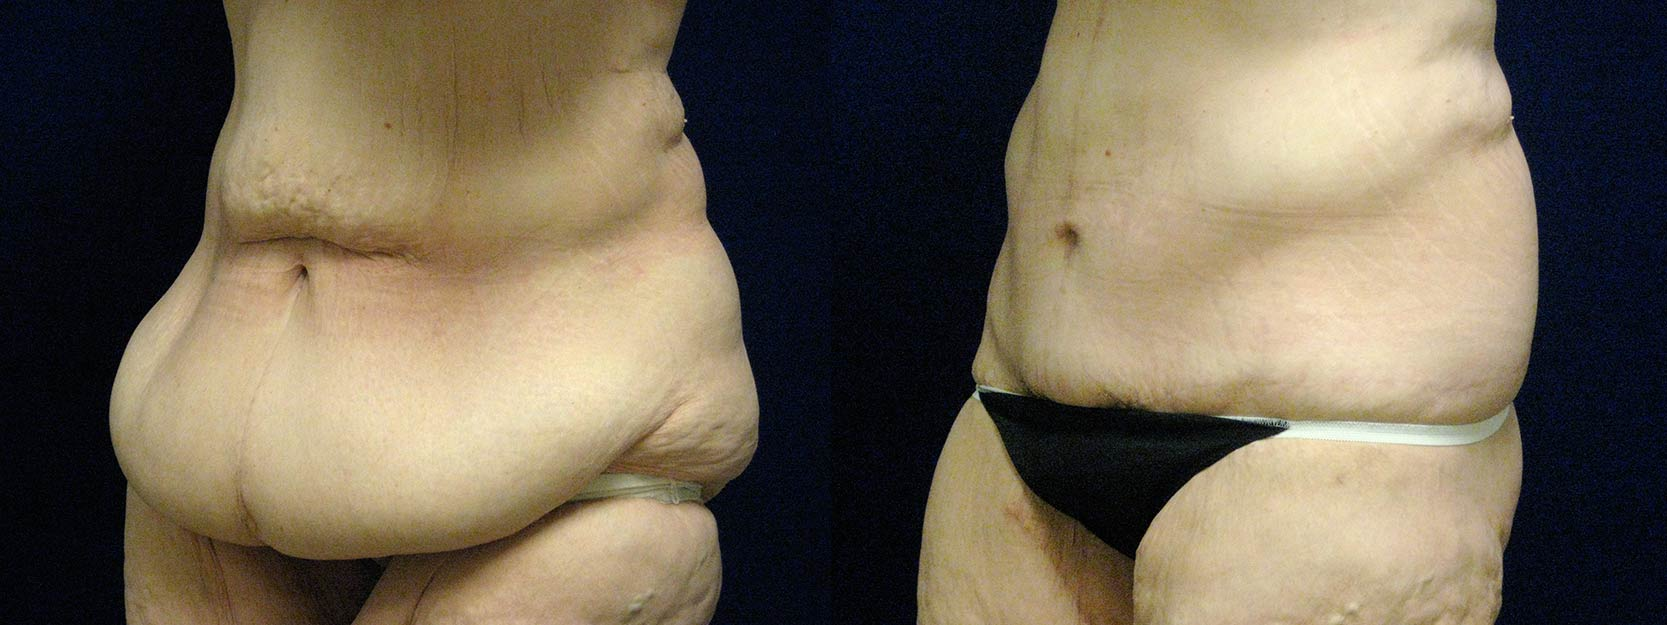 Left 3/4 View - Circumferential Tummy Tuck After Massive Weight Loss